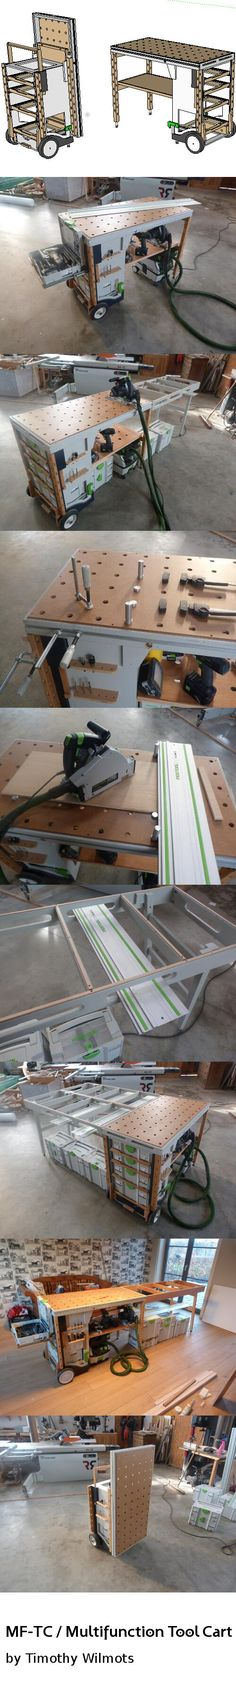 Shopmade versatile workbench. Plans available. http://www.benchworks.be/mftc.html